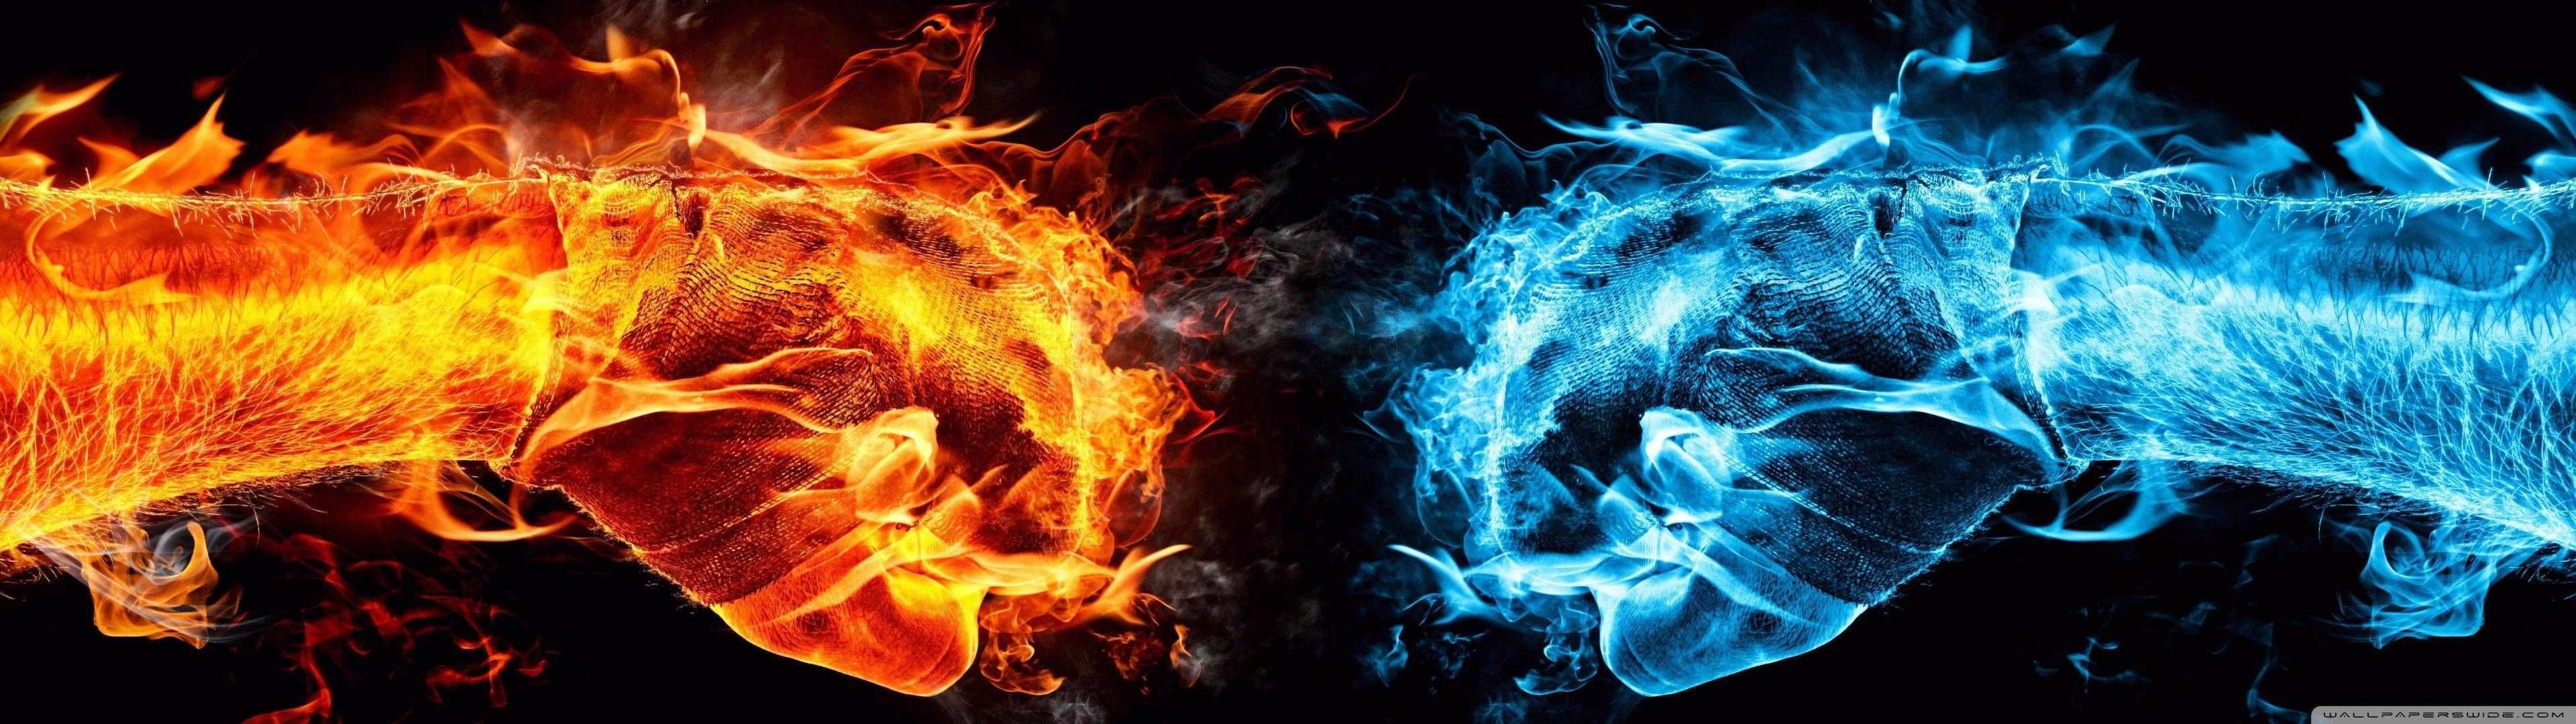 Awesome Dual Monitor Wallpapers Top Free Awesome Dual Monitor Backgrounds Wallpaperaccess